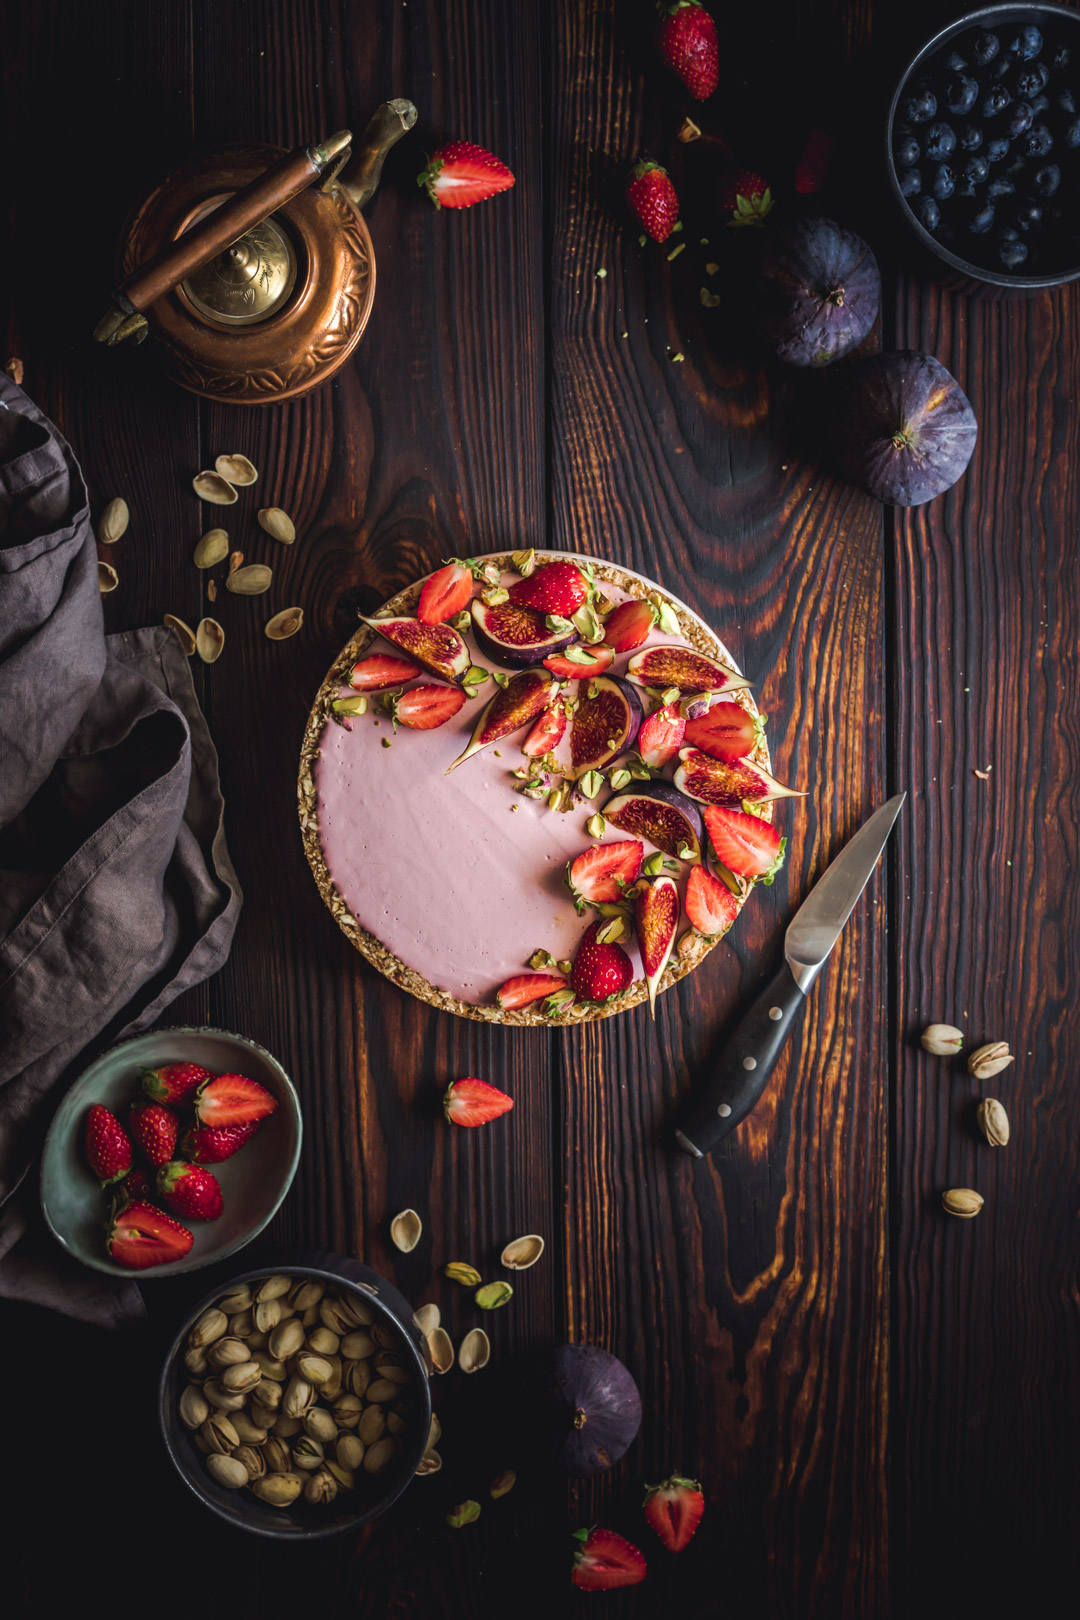 Vegan Strawberry Tart With Figs